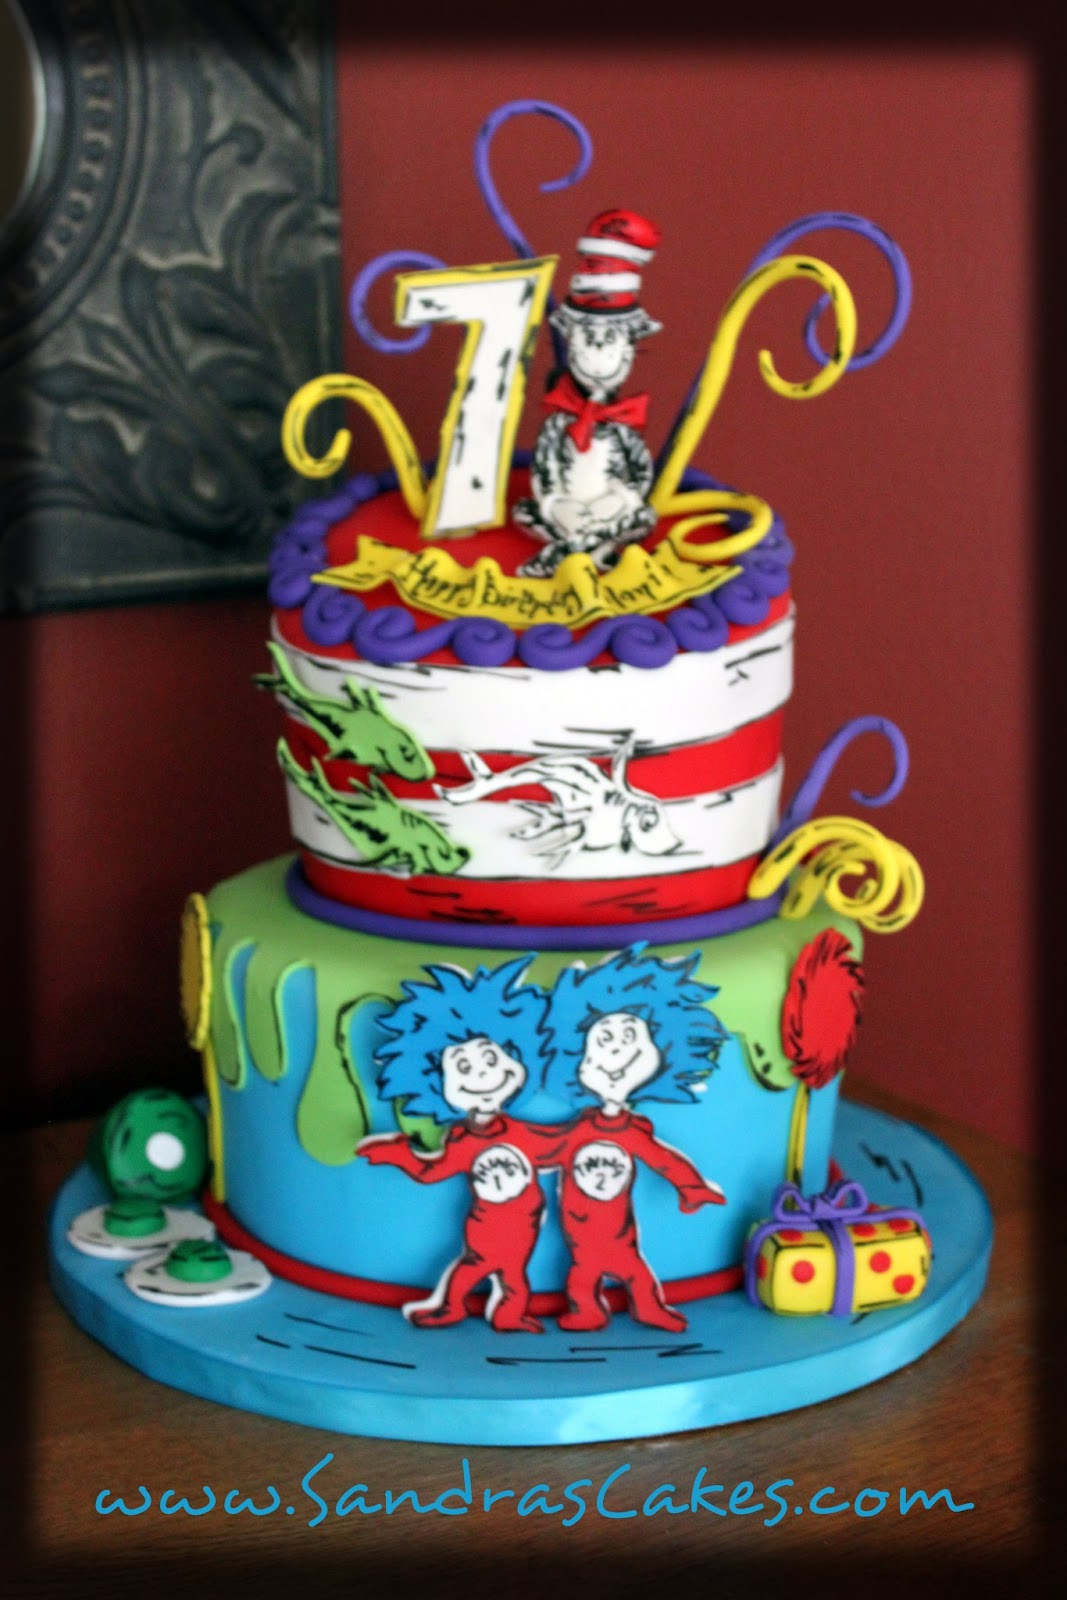 On Birthday Cakes Dr Seuss inspired birthday cake